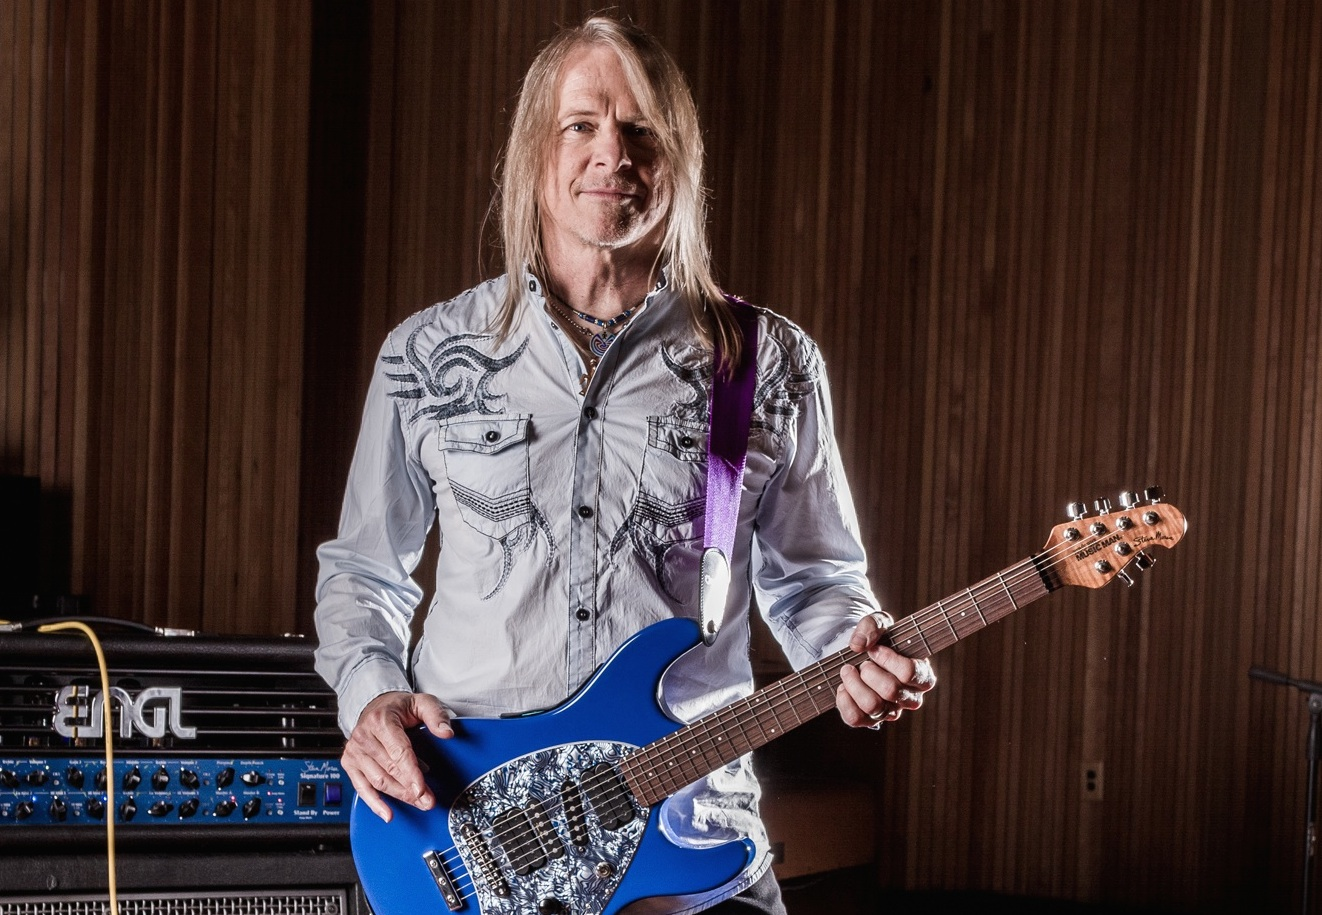 Interview with Steve Morse of Deep Purple and Flying Colors